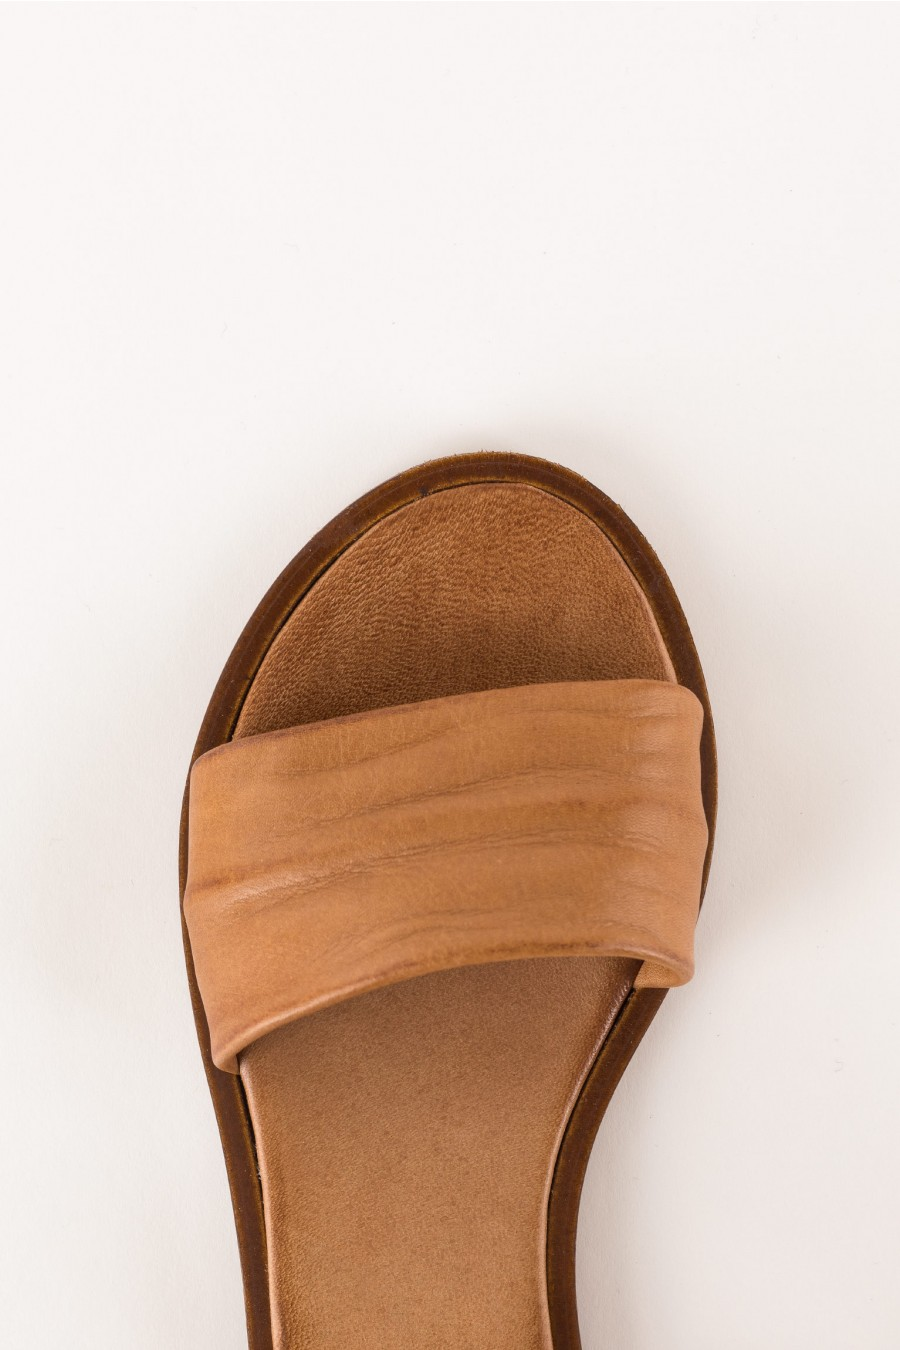 flat leather-colored sandal